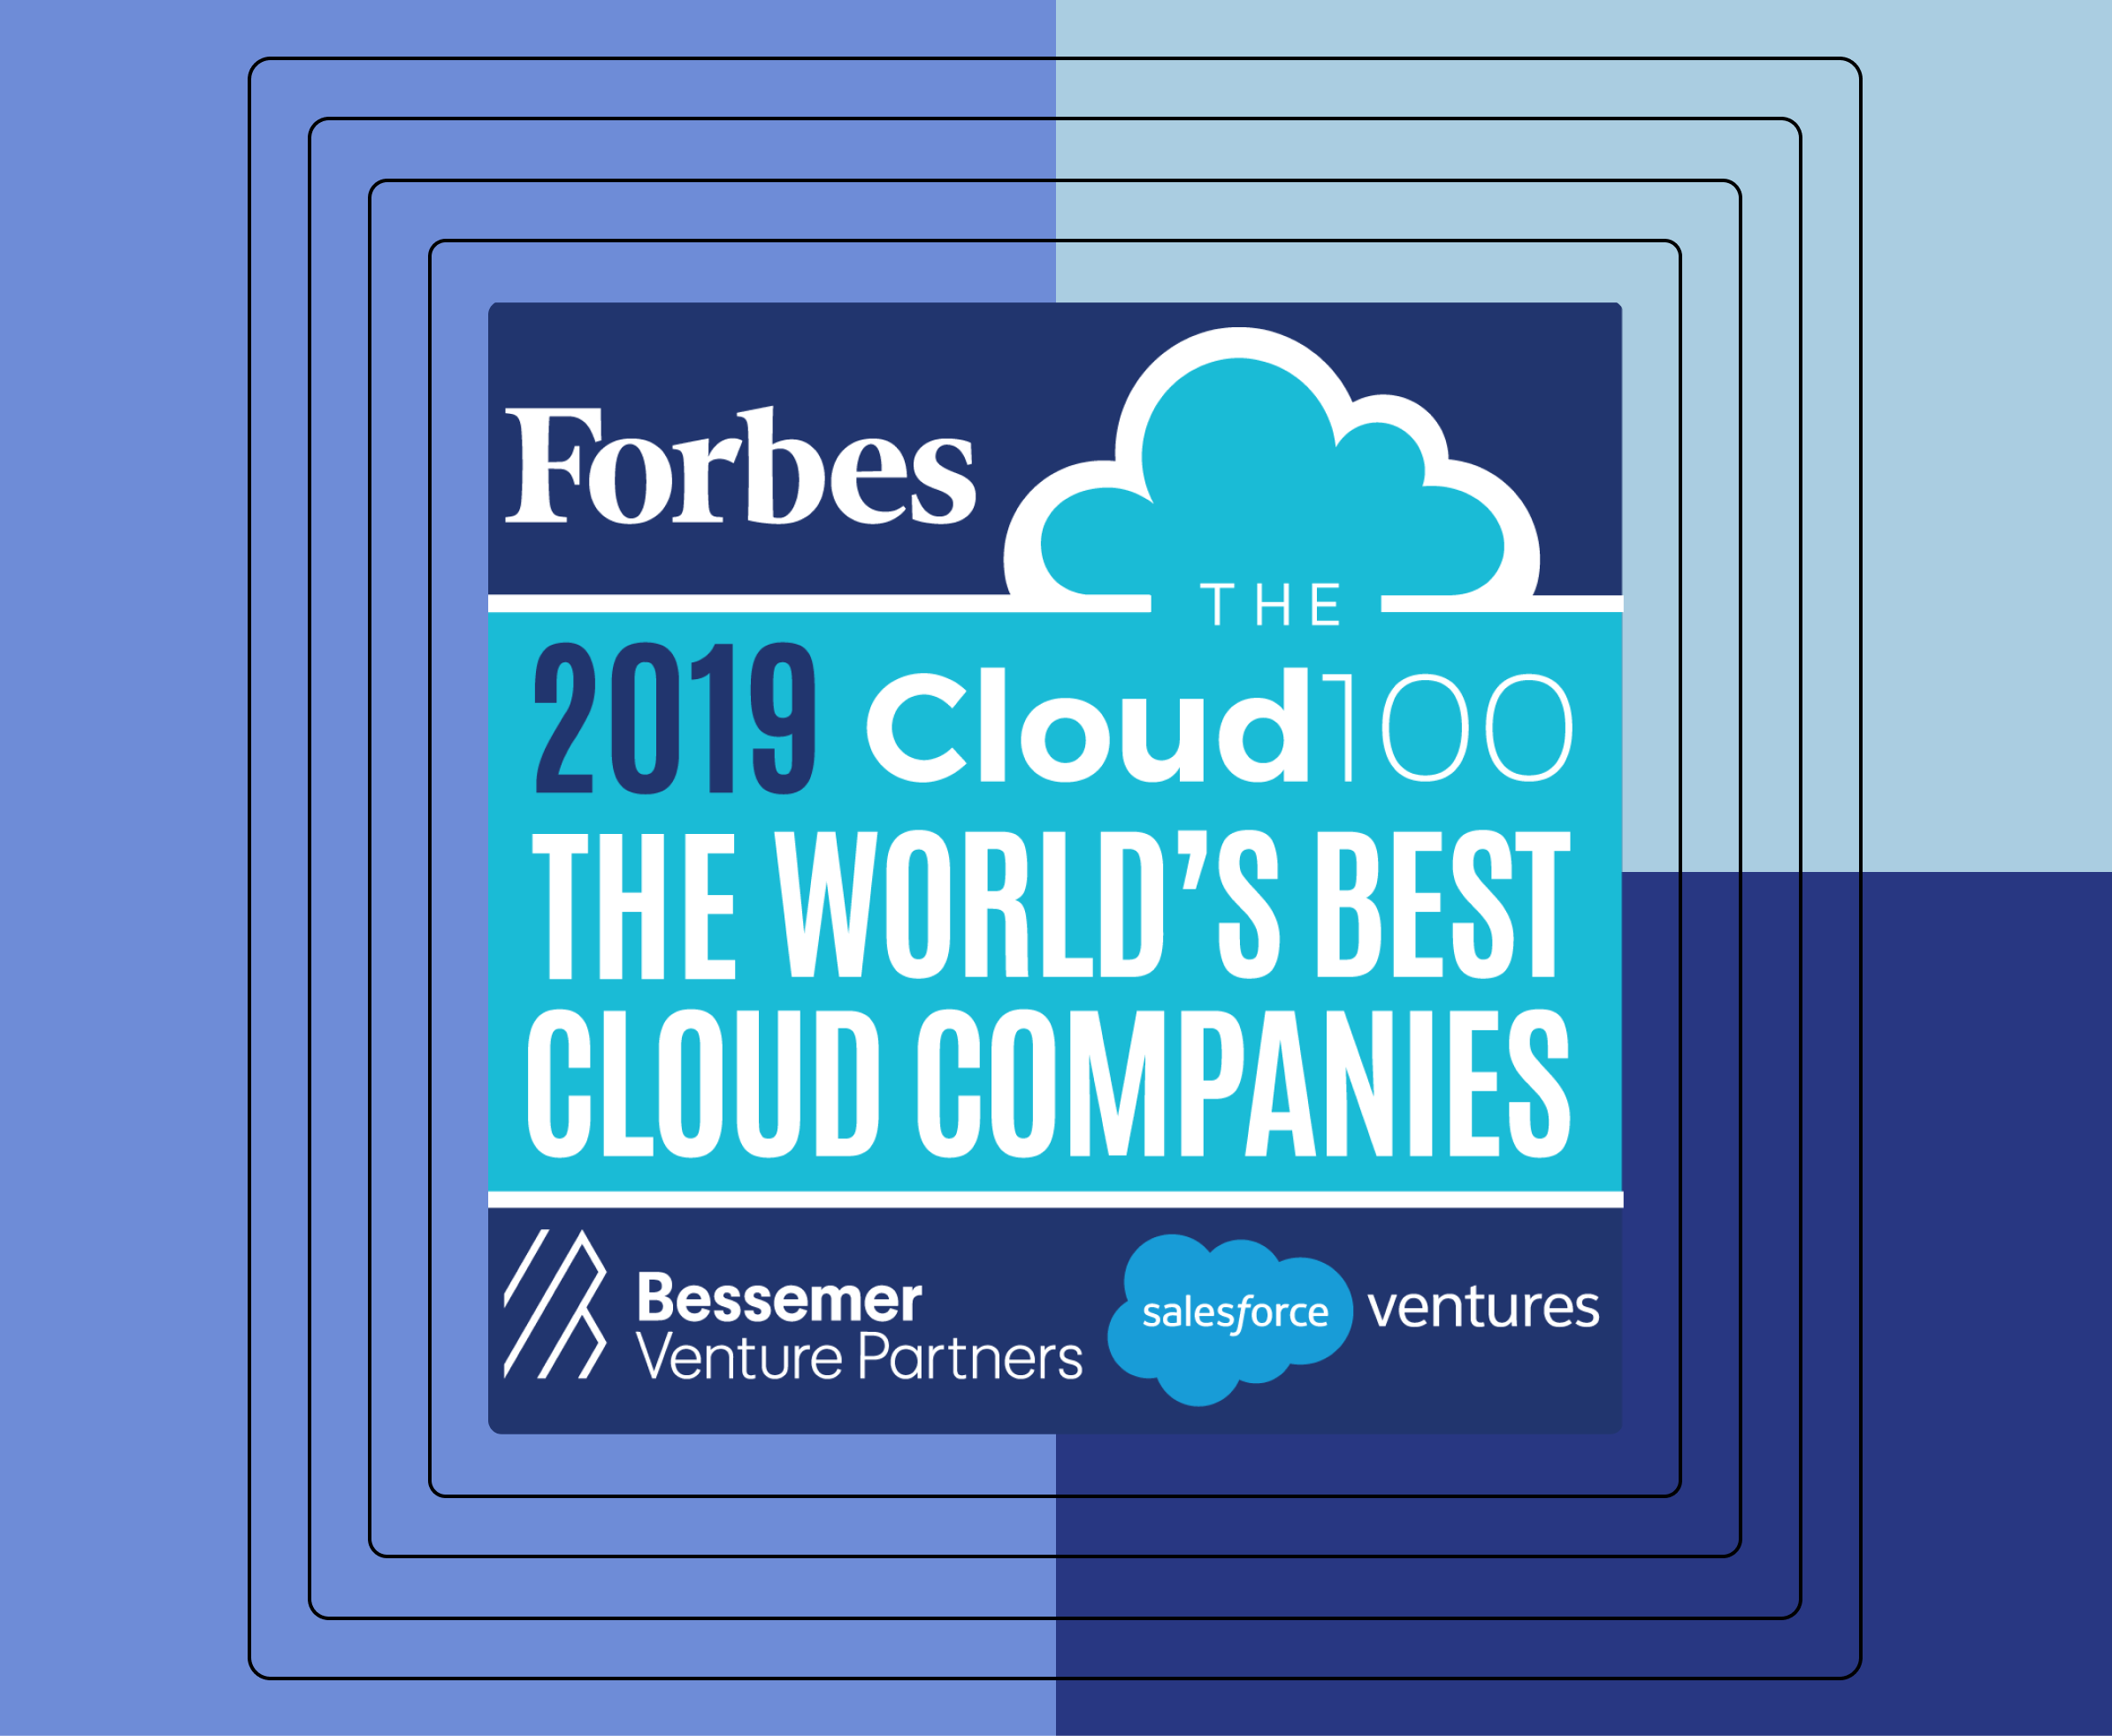 Alloy named forbes cloud 100